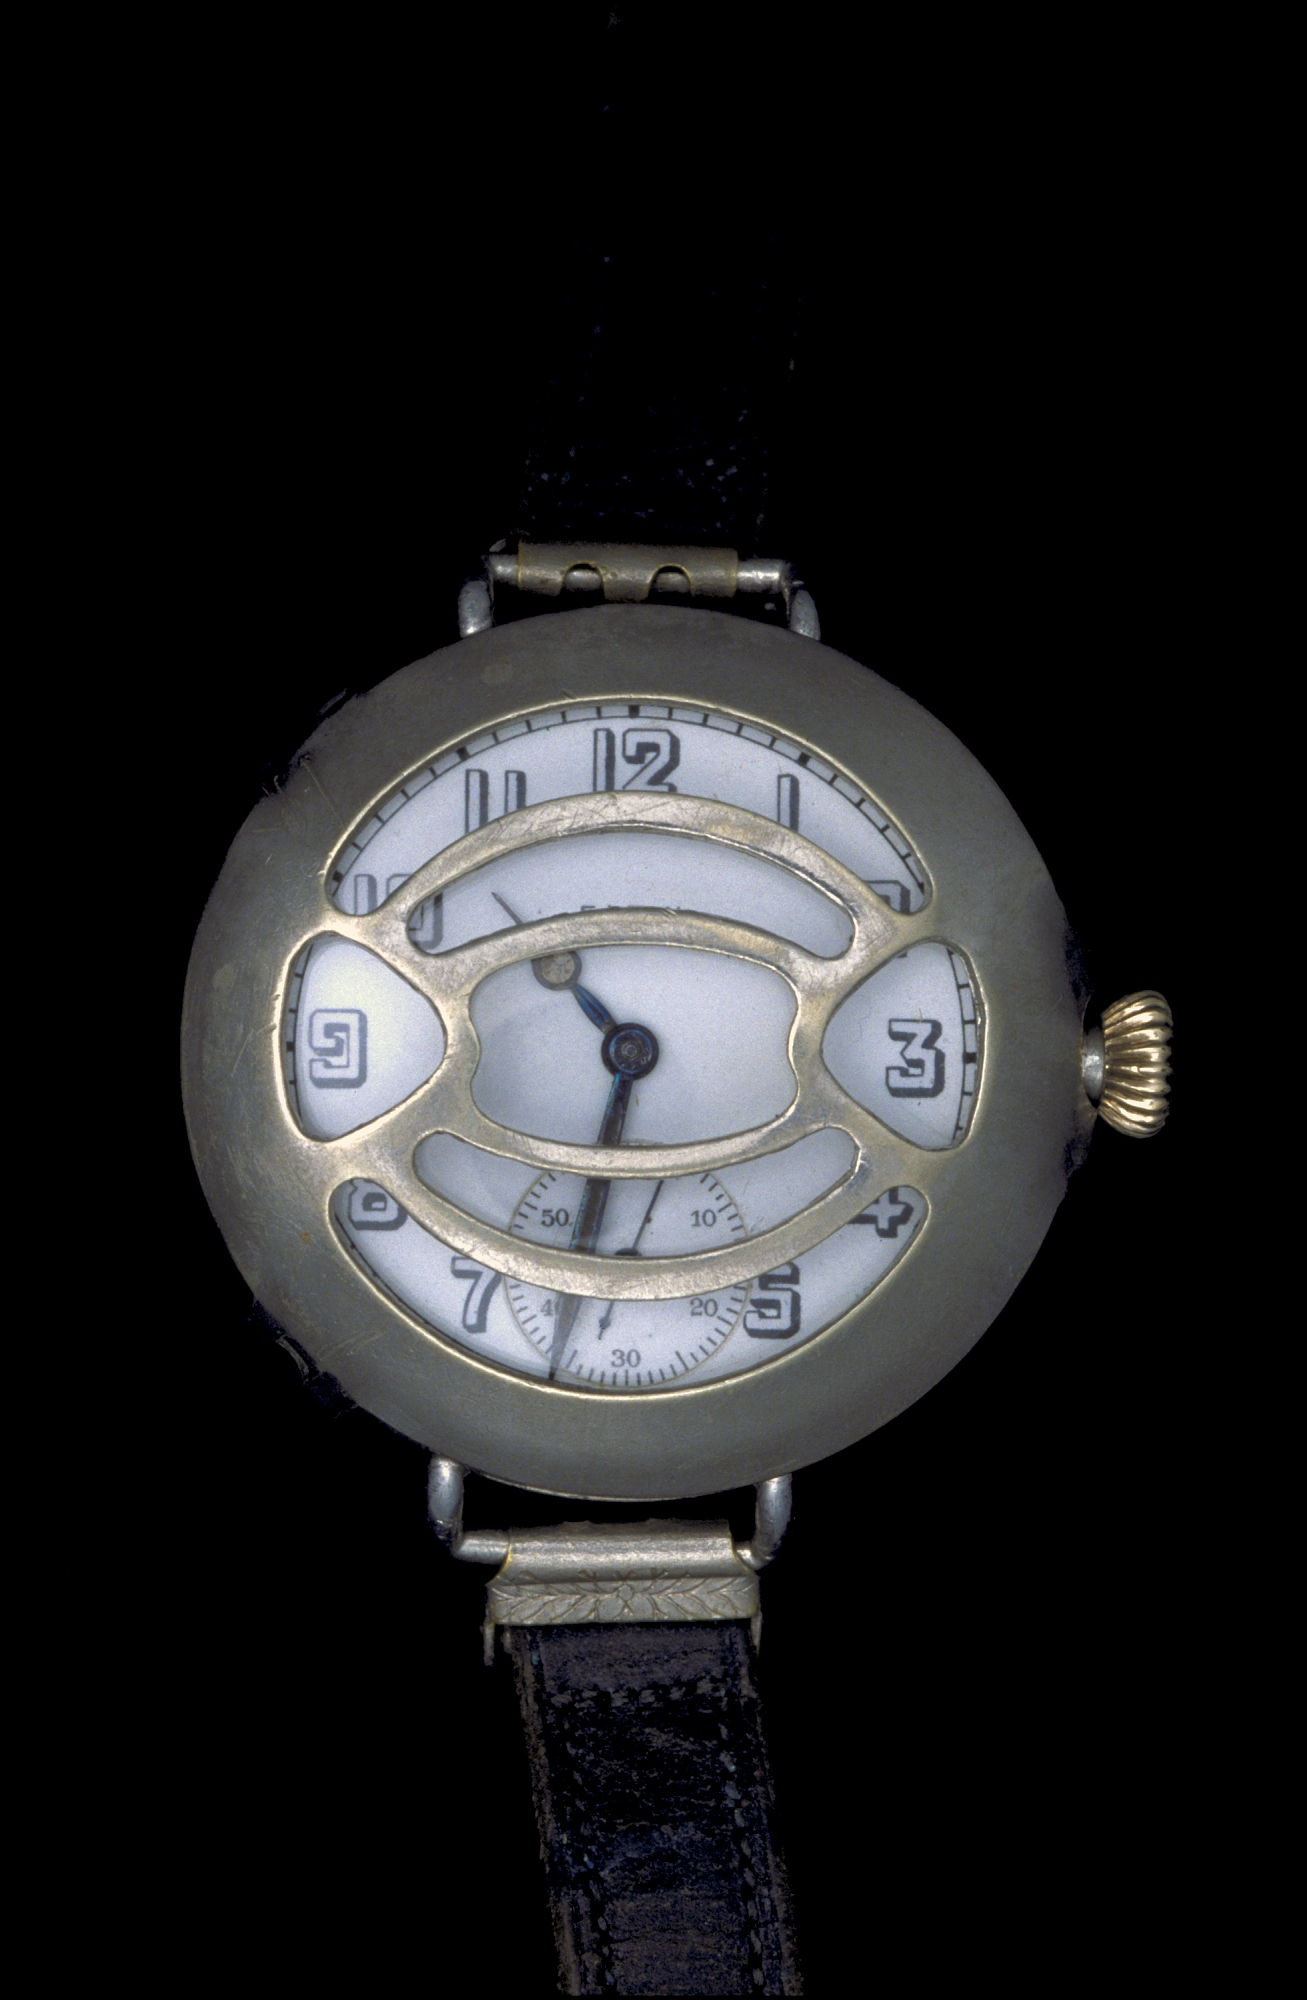 A wristwatch made by the Elgin National Watch Company of Elgin, Illinois, in 1917.